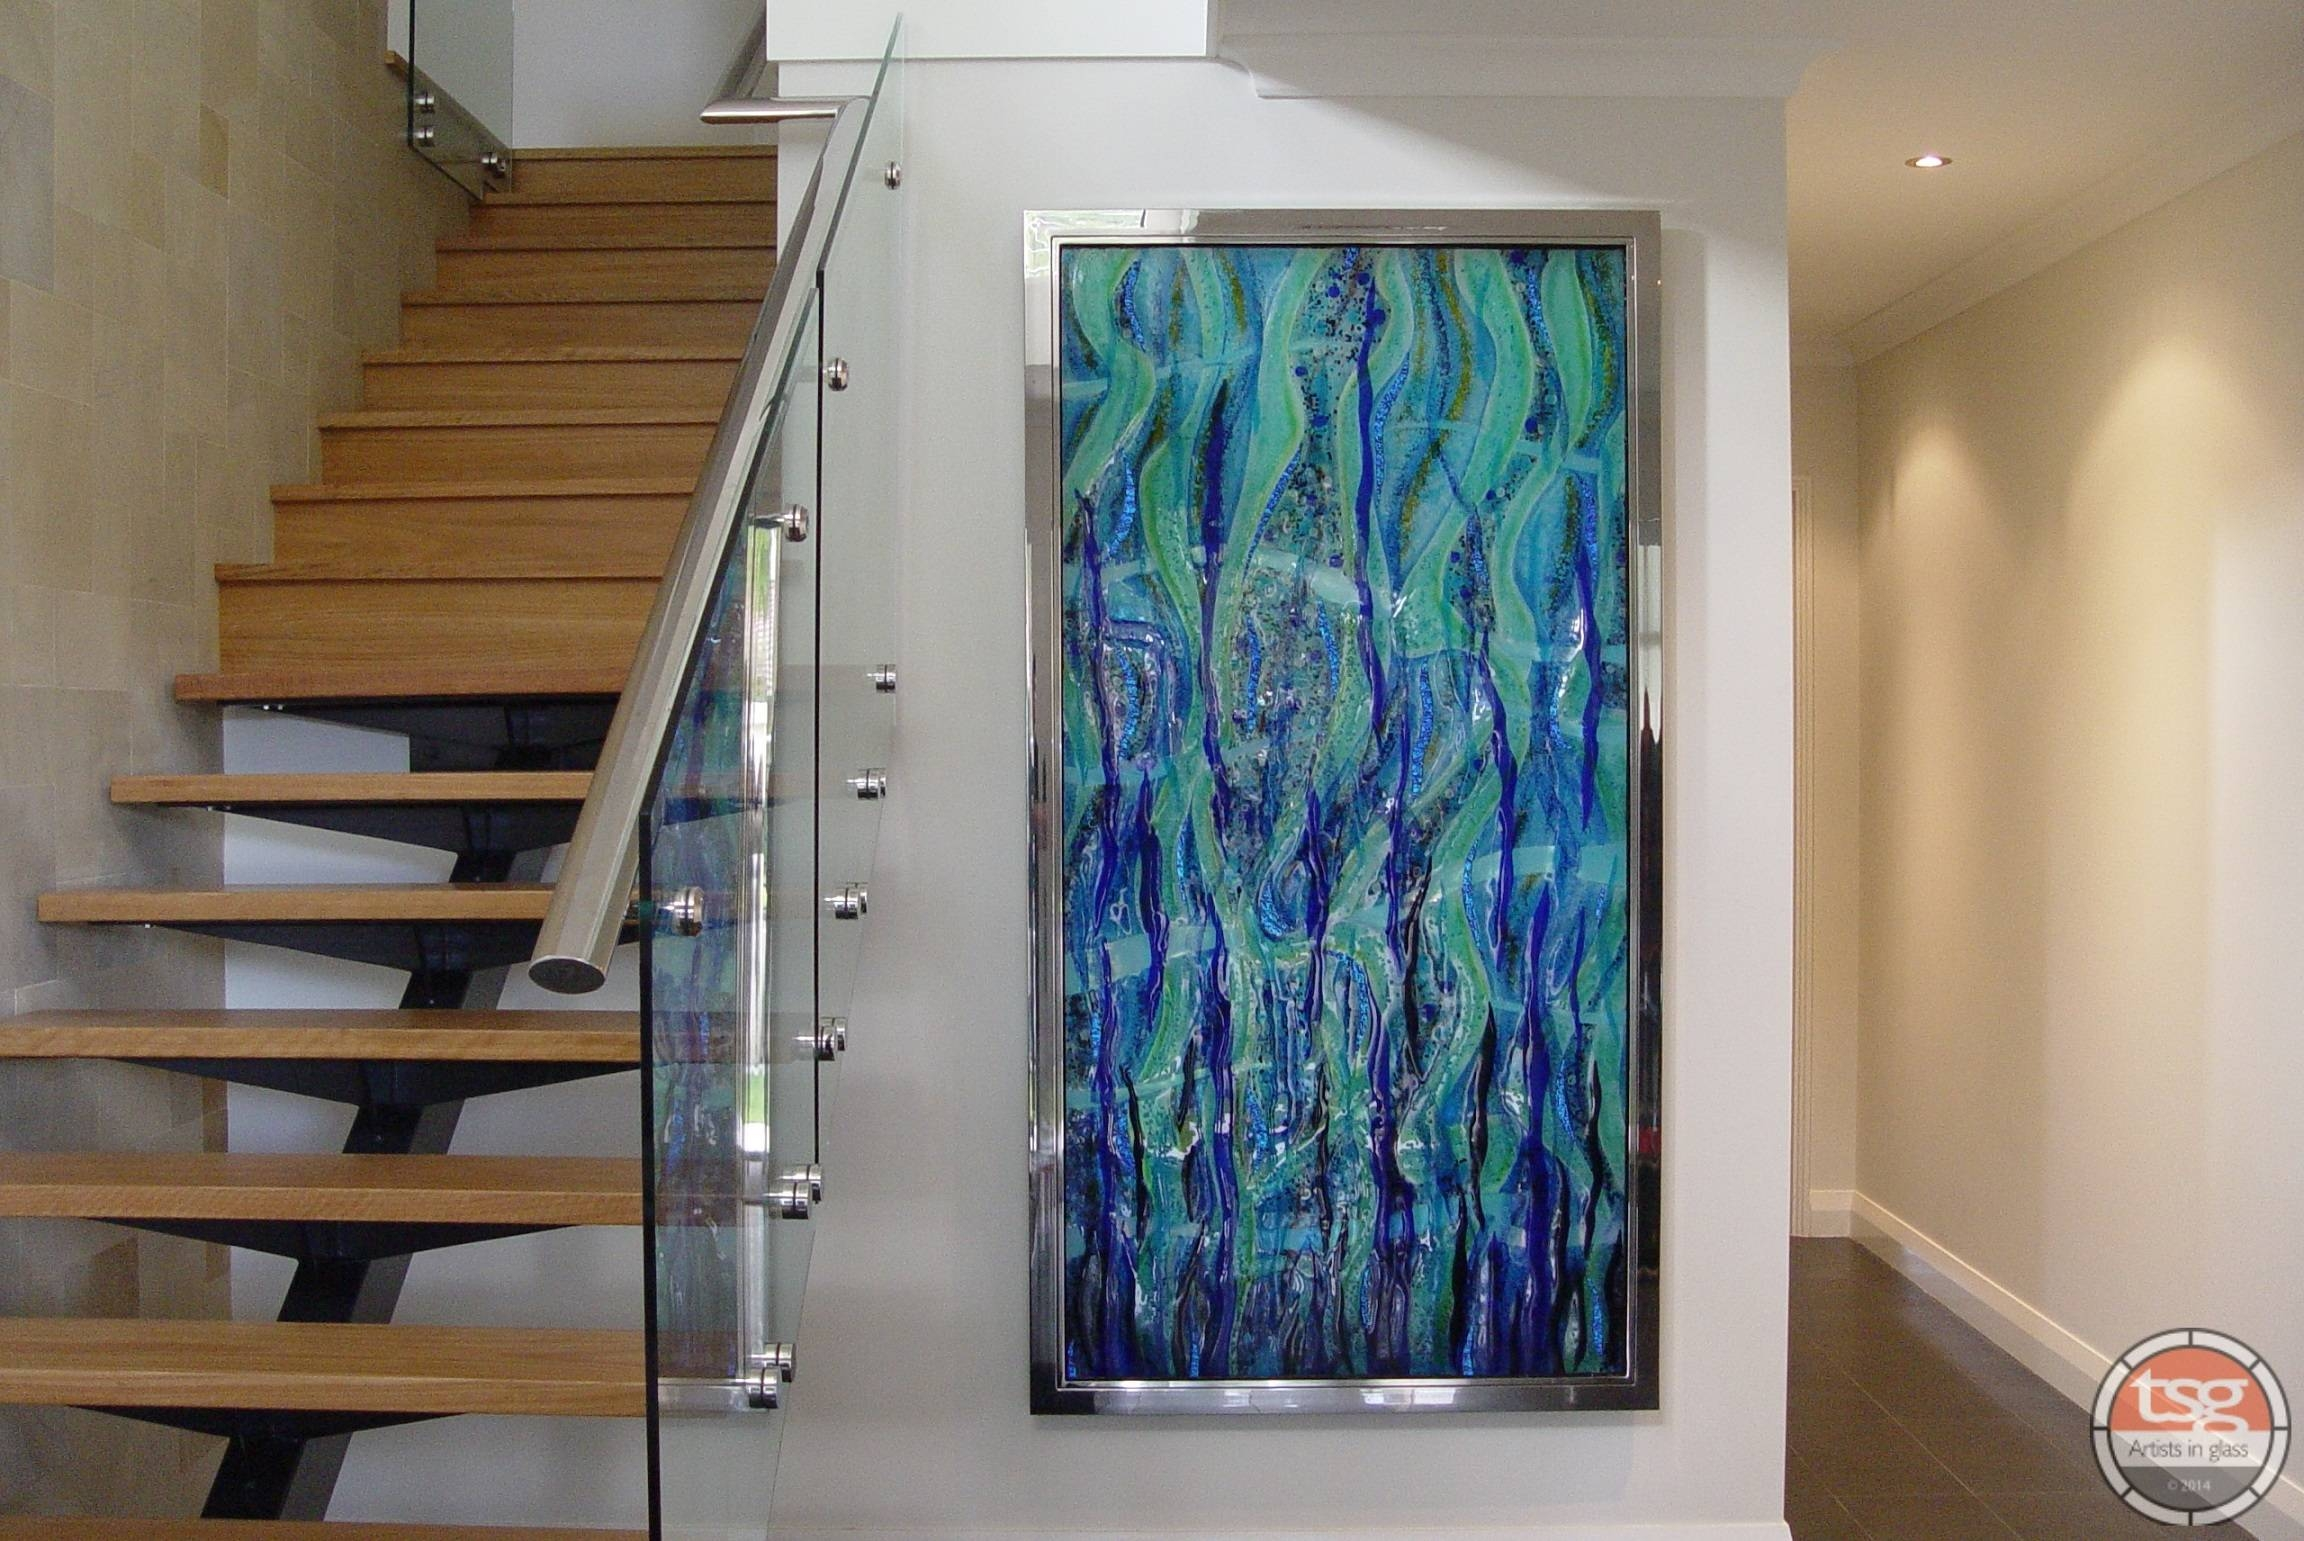 Contemporary Art Glass | Tsg With Regard To 2017 Glass Wall Art Panels (View 17 of 20)